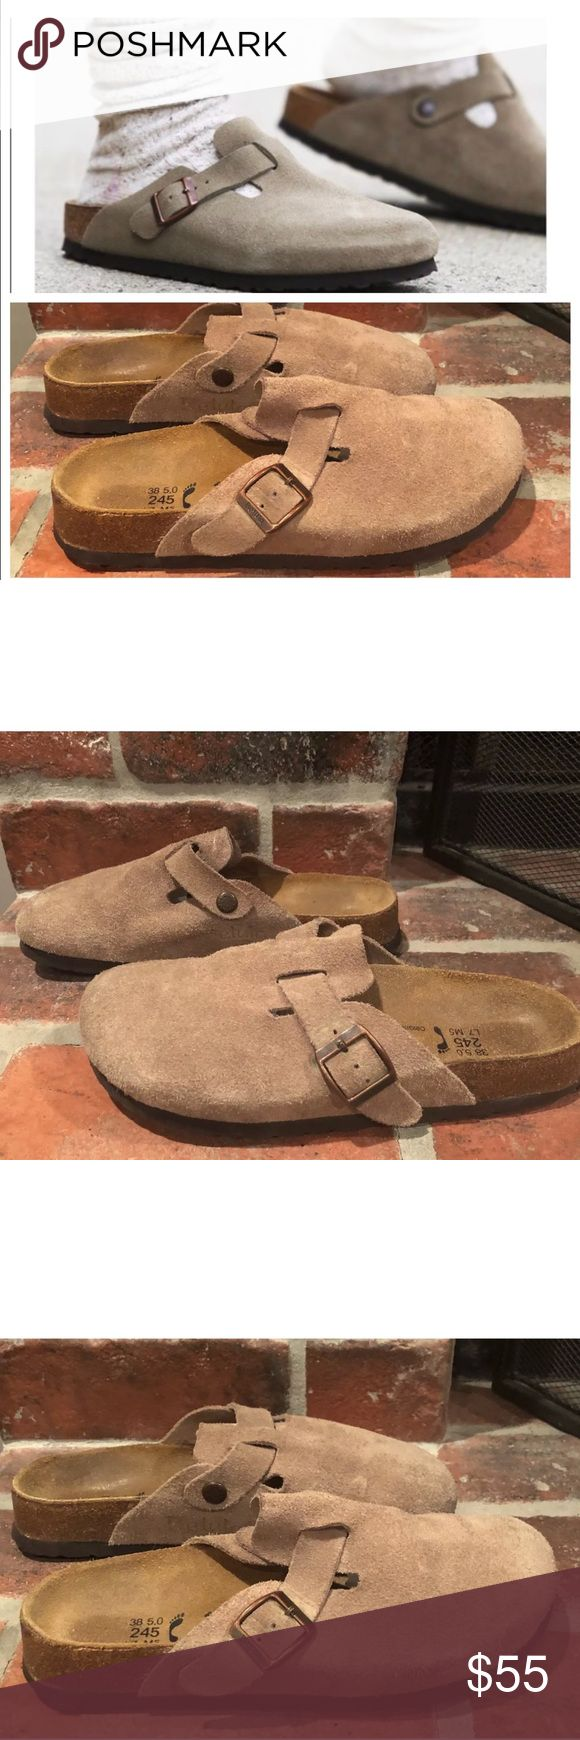 Birkenstock Betula Suede Boston Clogs size 7 This listing is for a pair of Betula/Birkenstock Suede Boston Clogs in a Women's size 7. They are in very good condition. Please see all pics. Minimal wear to suede.   I absolutely love the way Free People styled these (see stock pic). Please note the stock photo may be slightly different than the item for sale.  Layer these with this socks in the winter and no socks in the spring. Shoes Mules & Clogs